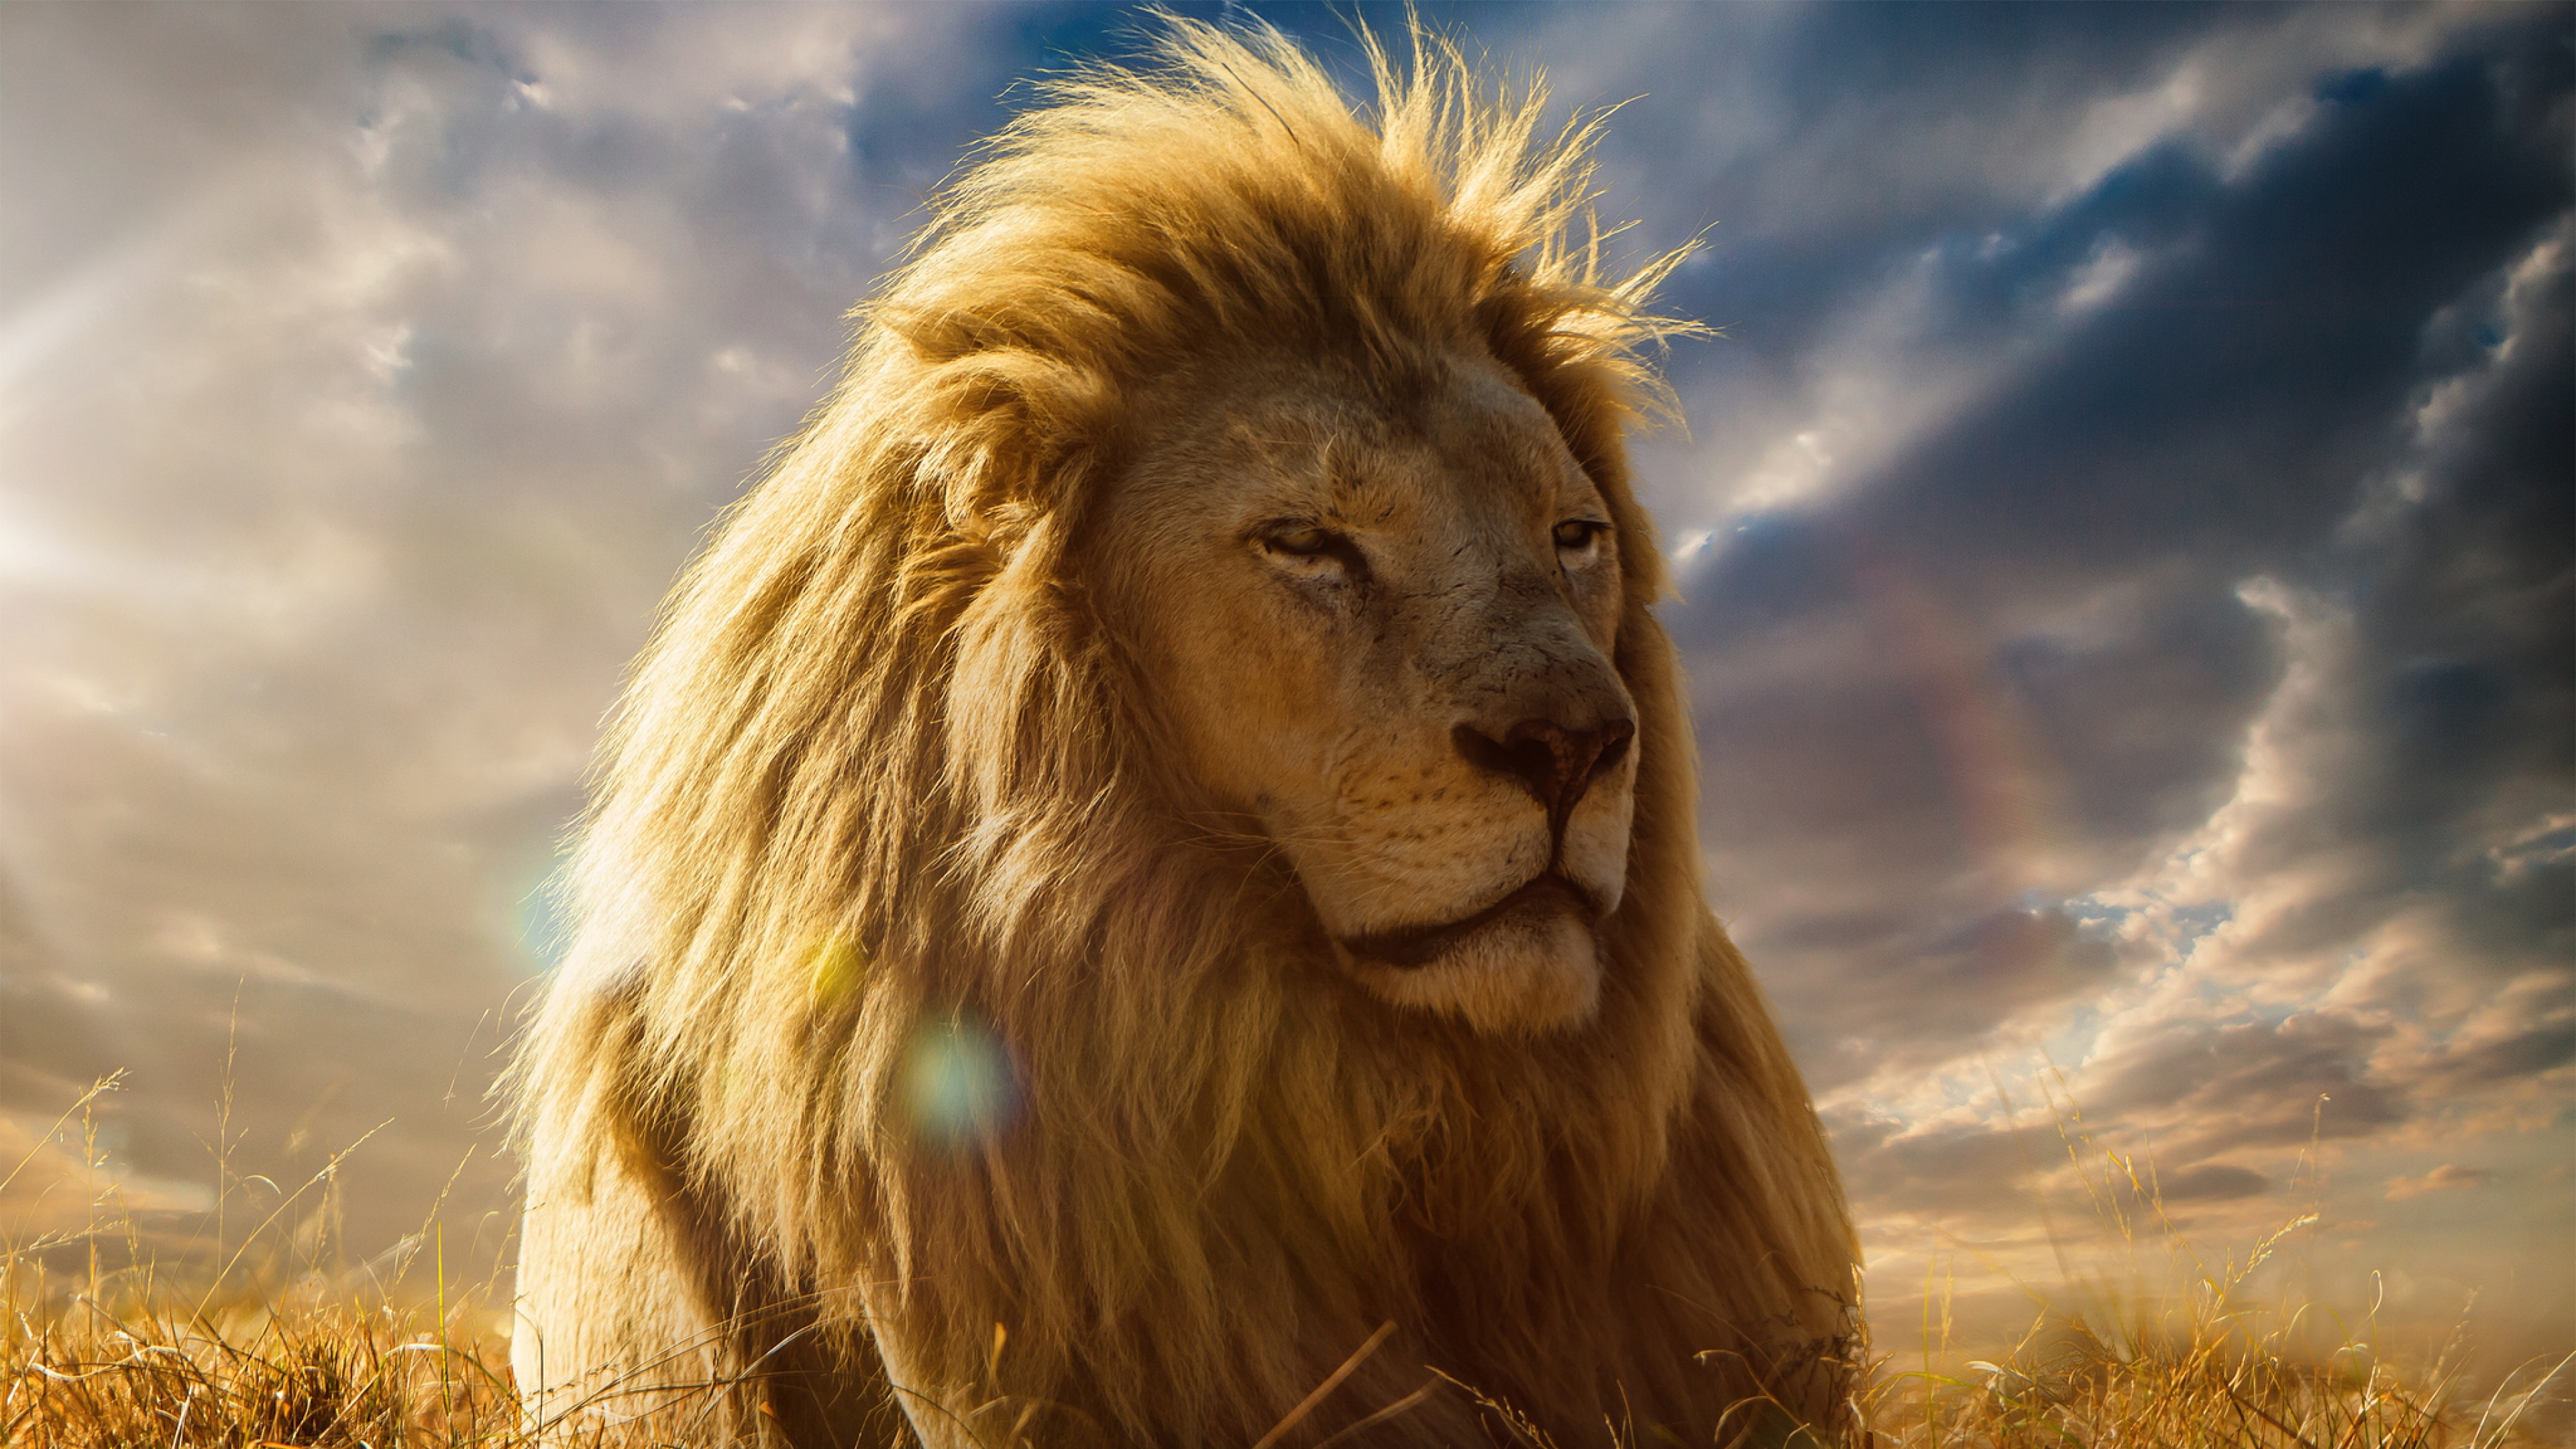 3840x2160 Preview wallpaper lion, king of beasts, mane, savannah